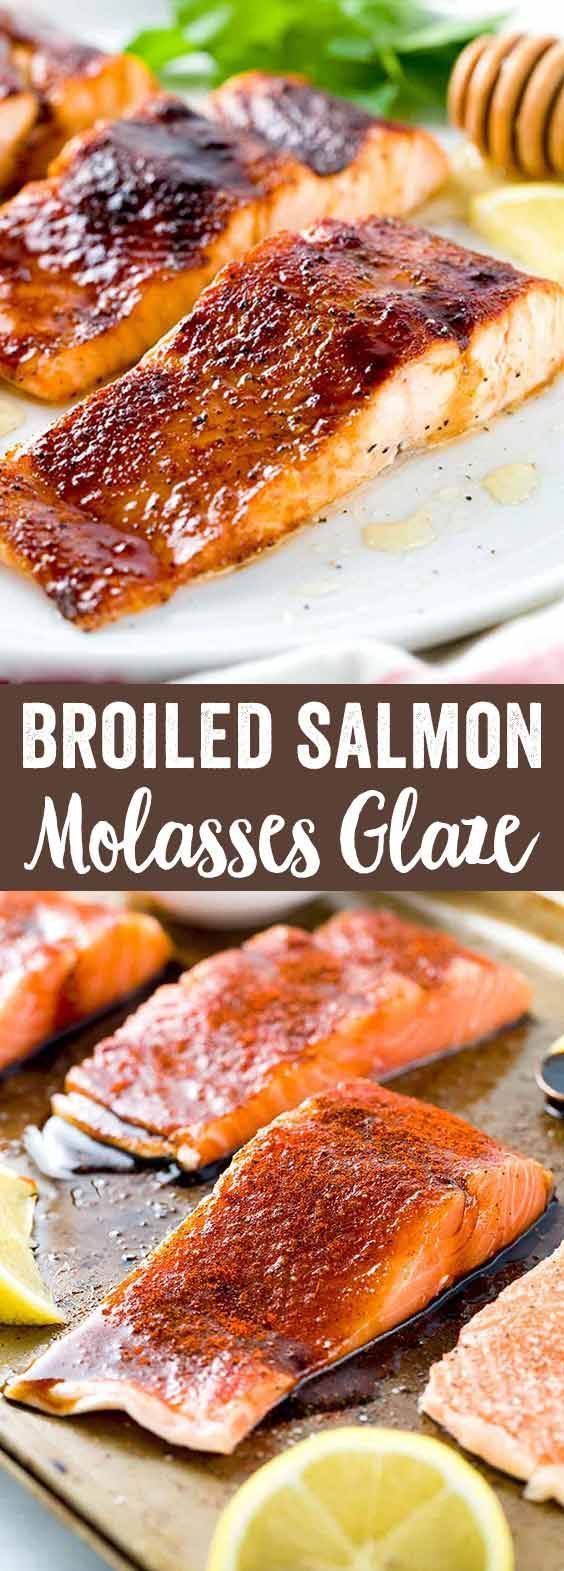 Broiled Salmon with Molasses Glaze - A delicious and easy fish recipe with bold spicy flavors that's ready in under 30 minutes and that your whole family will enjoy.  via @foodiegavin